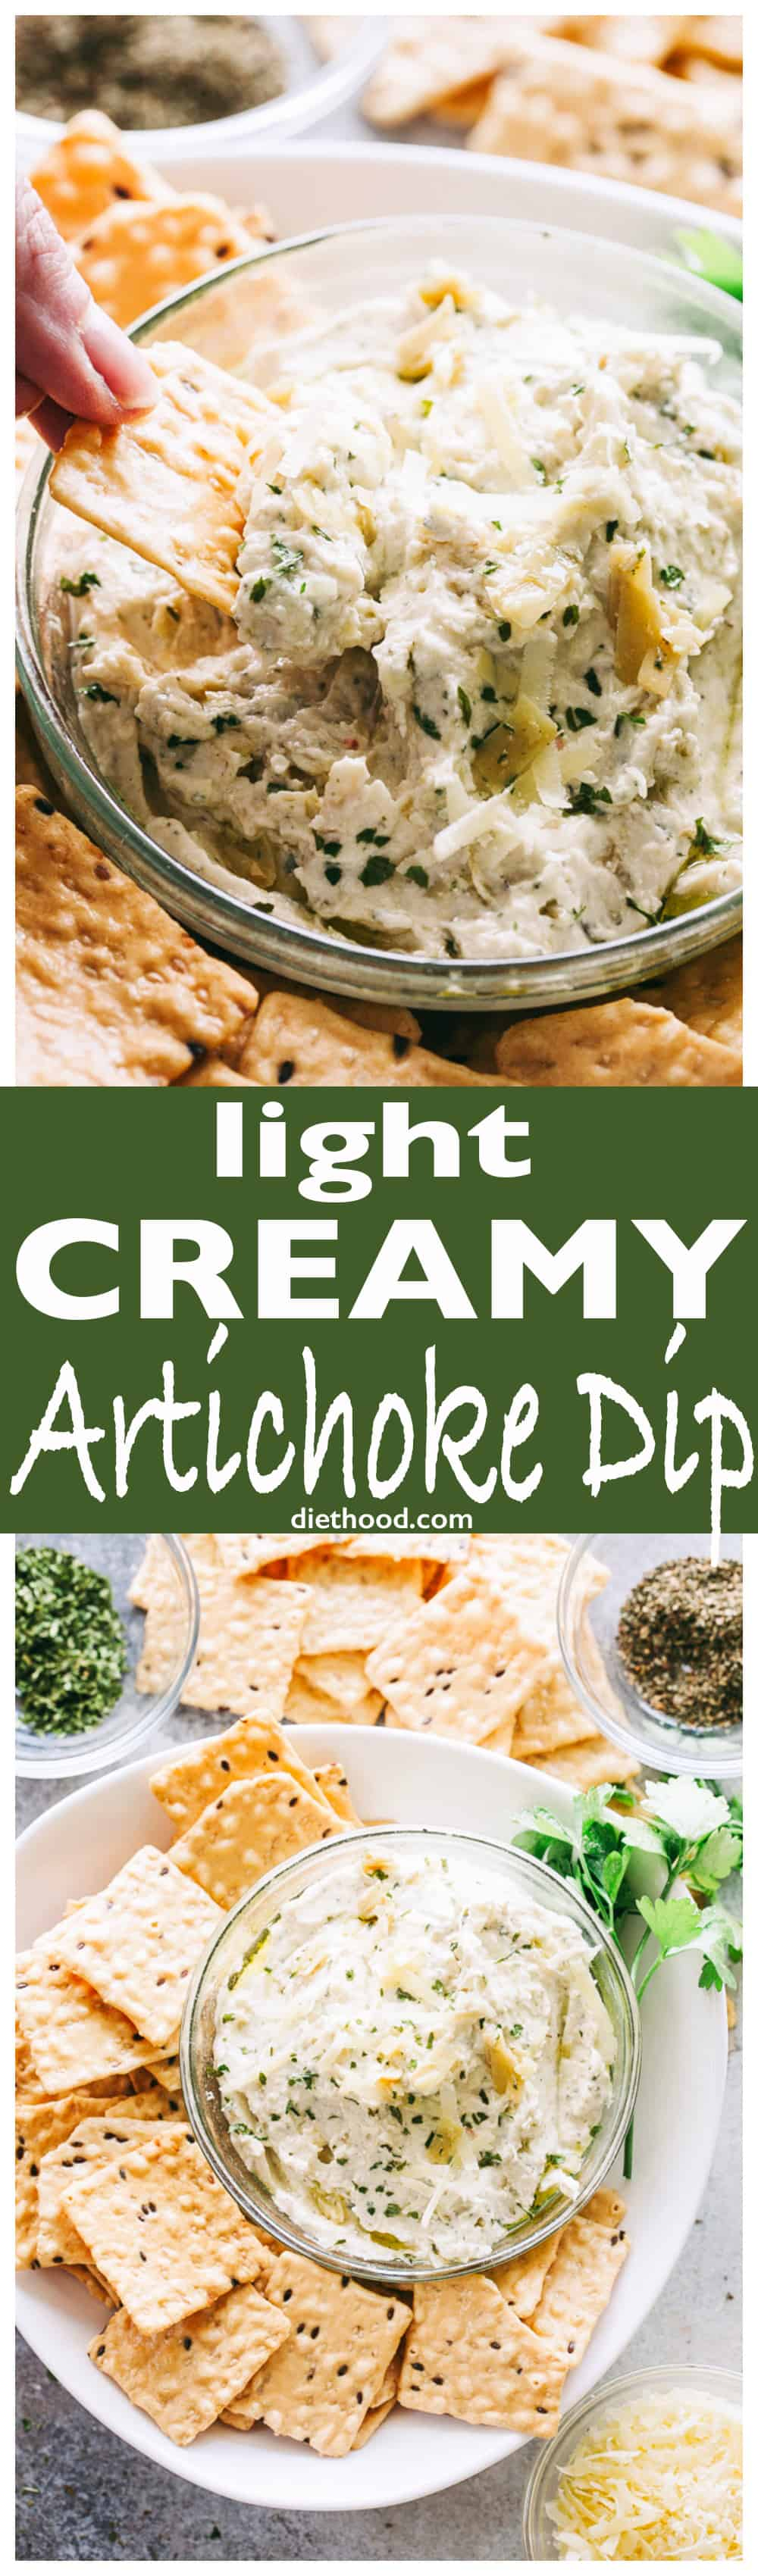 Light Creamy #Artichoke Dip - My favorite #dip to bring to #Holiday parties! It's creamy, cheesy, yet light and super delicious!